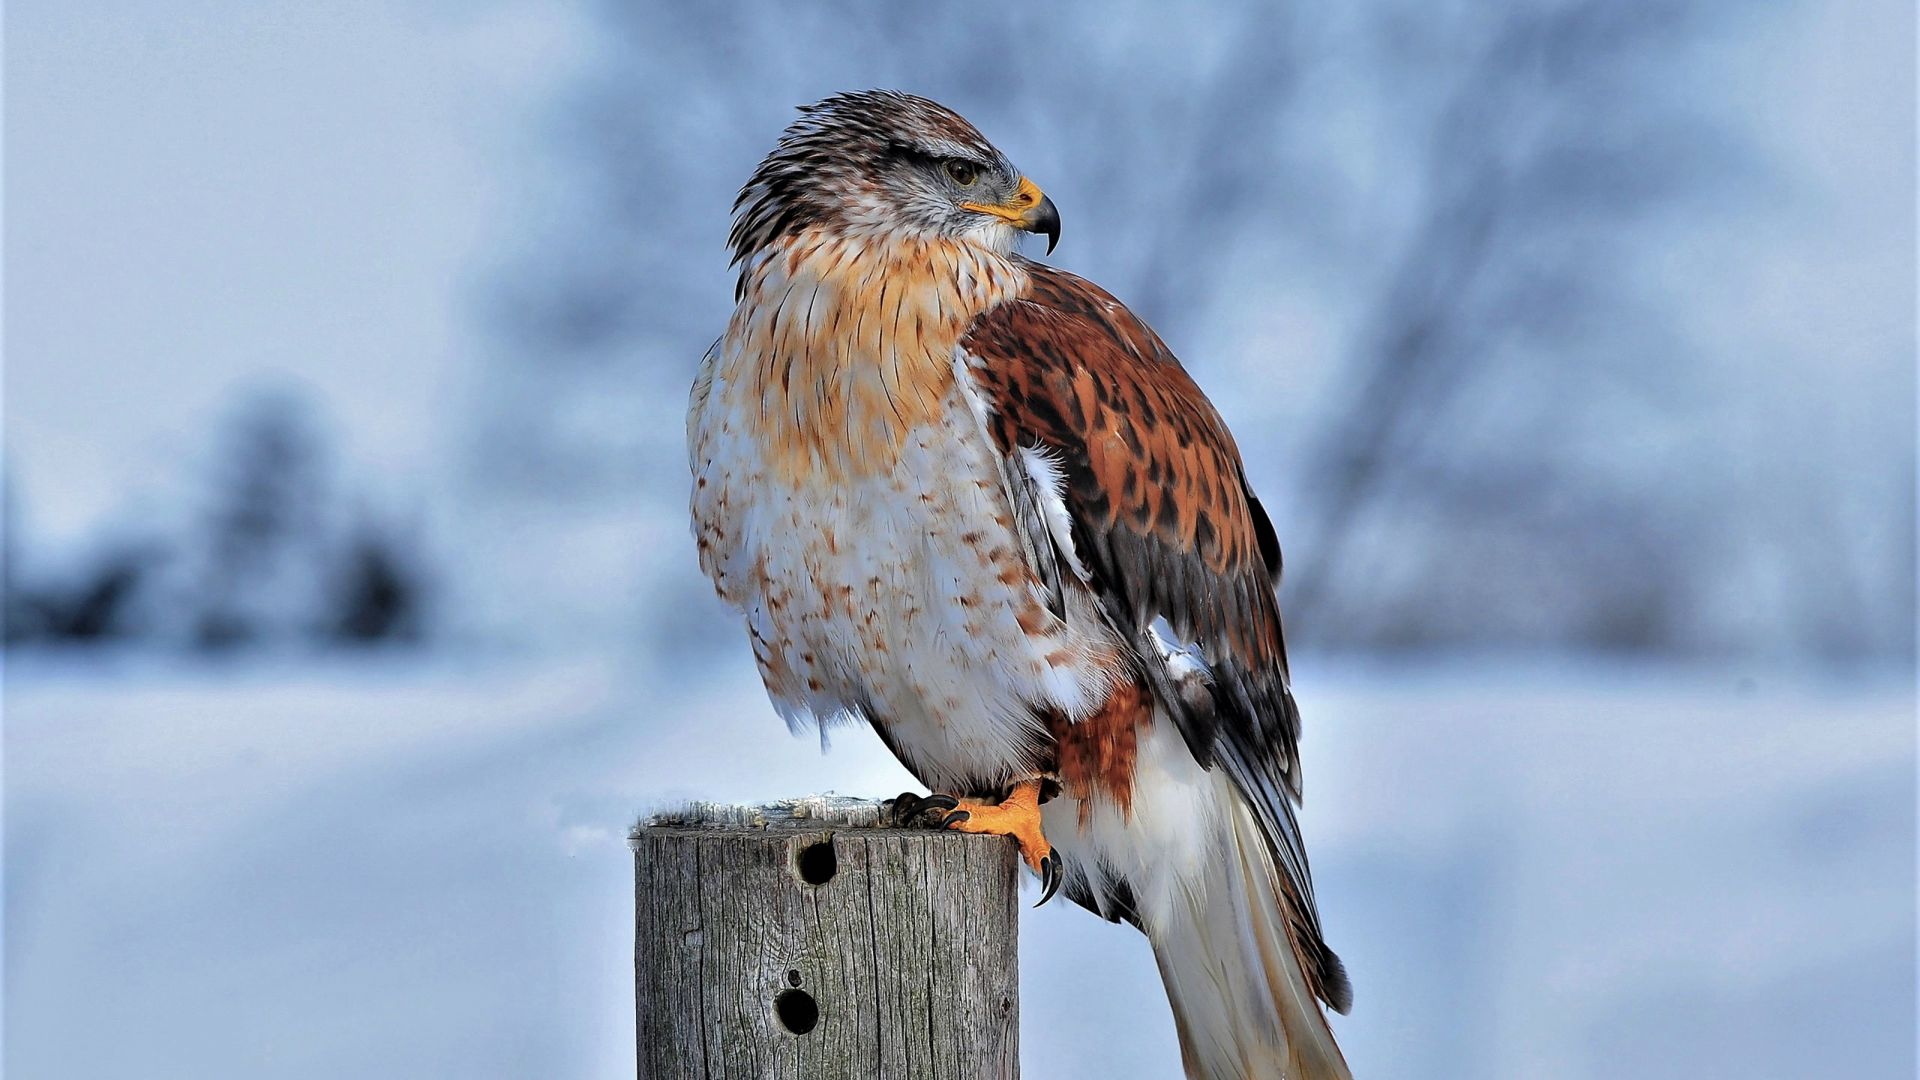 Королевский ястреб, Ferruginous Hawk, bird, winter, snow, 4K (horizontal)